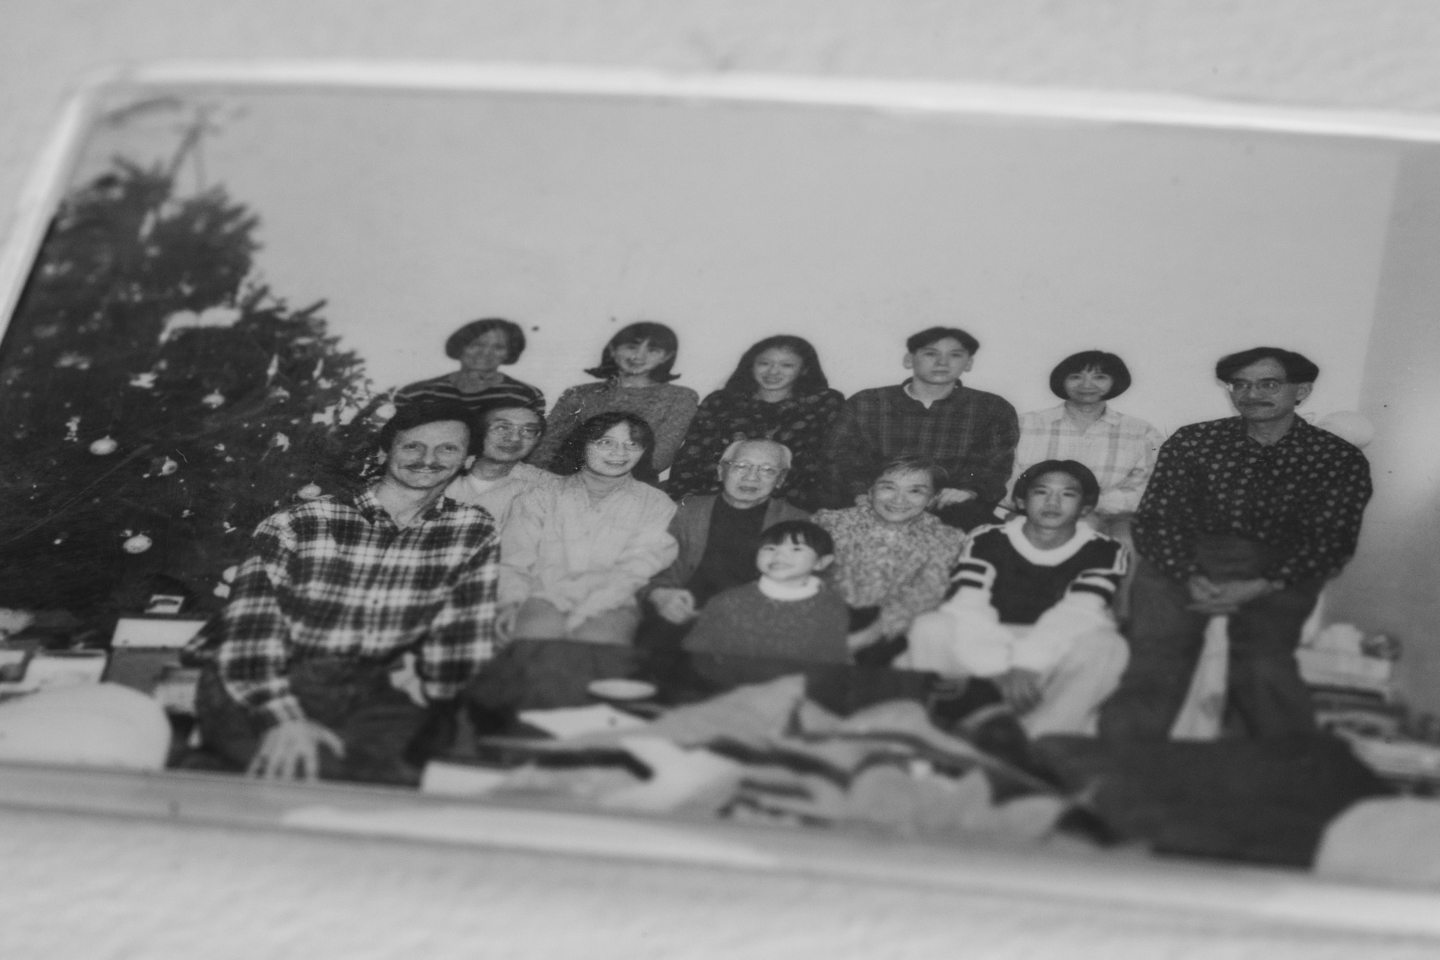 A family photo that popo laminated and carried around in her wallet since Christmas of 1995 in Halifax, Canada.